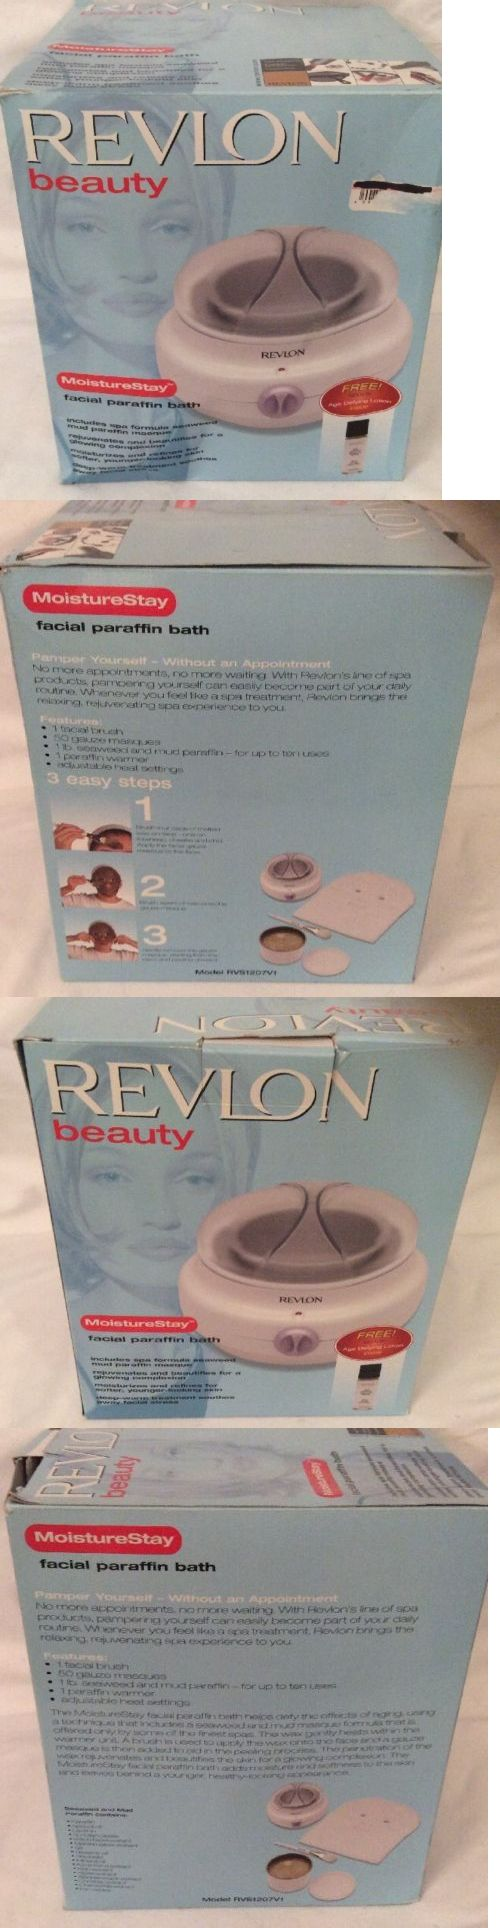 Professional Waxing Warmers: Revlon Beauty Moisture Stay Facial Paraffin Bath -> BUY IT NOW ONLY: $35.0 on eBay!